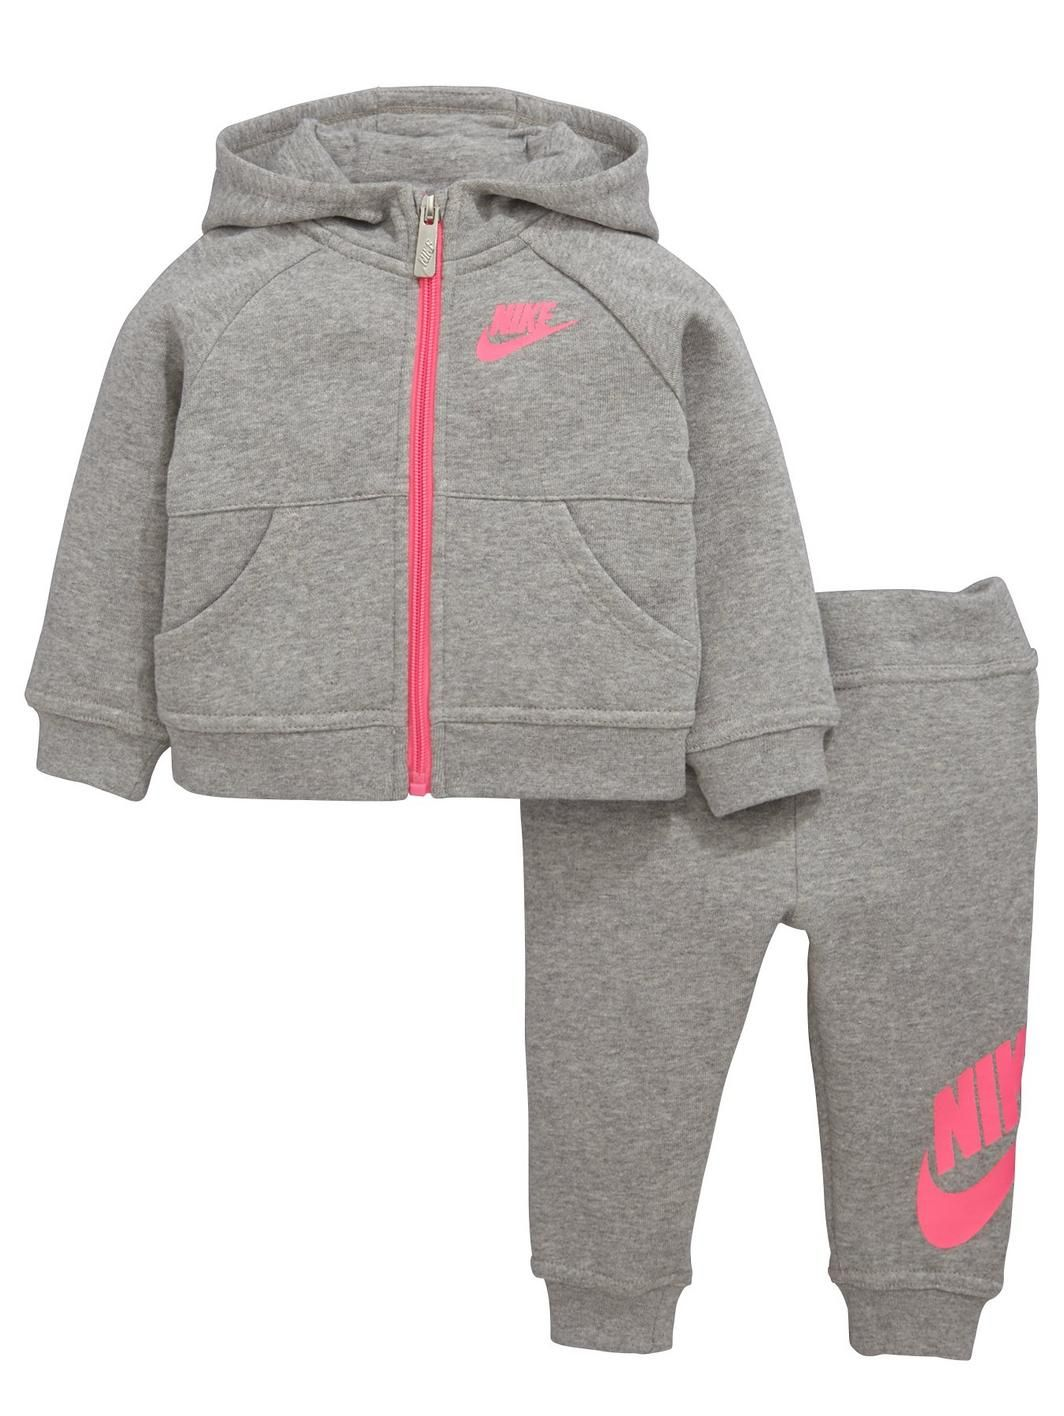 Nike Baby Girl Clothes Mesmerizing Nike Store $19 On  Pinterest  Babies Girls And Babies Clothes 2018